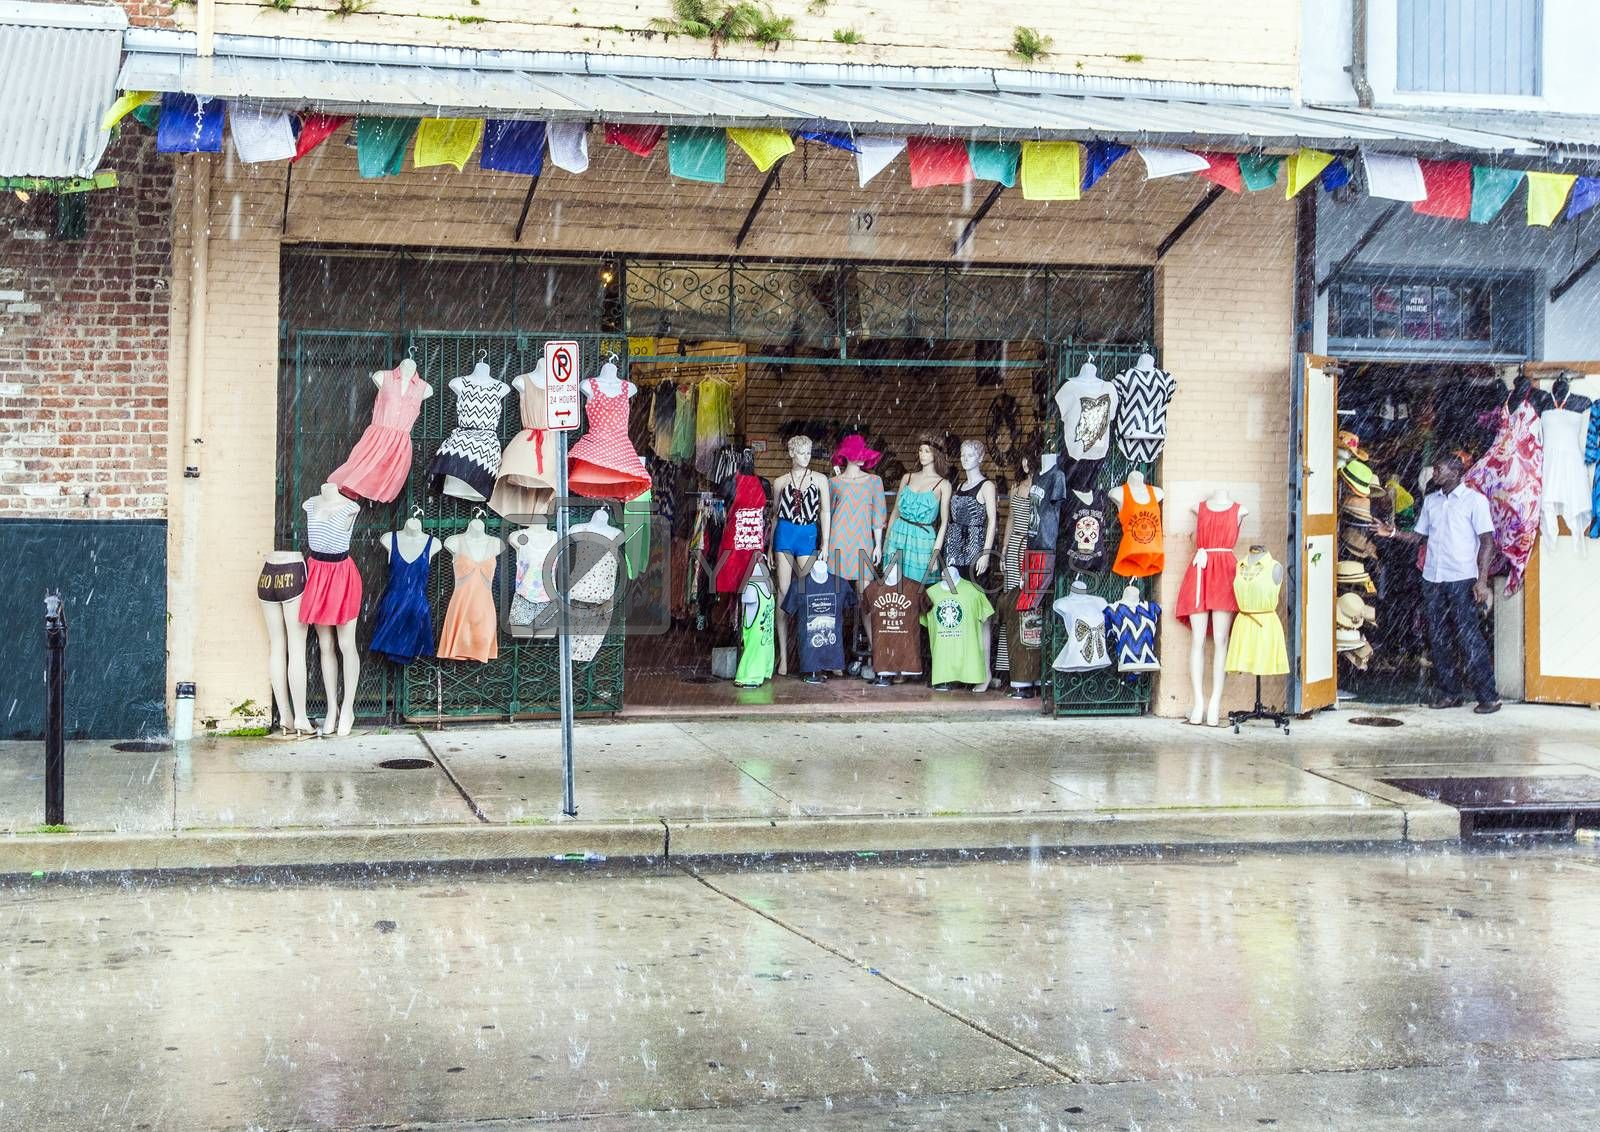 NEW ORLEANS,  USA - JULY 15, 2013: rain at the French Market on Decatur Street in New Orleans, USA. It is a popular tourist attraction in the New Orleans French Quarter district.